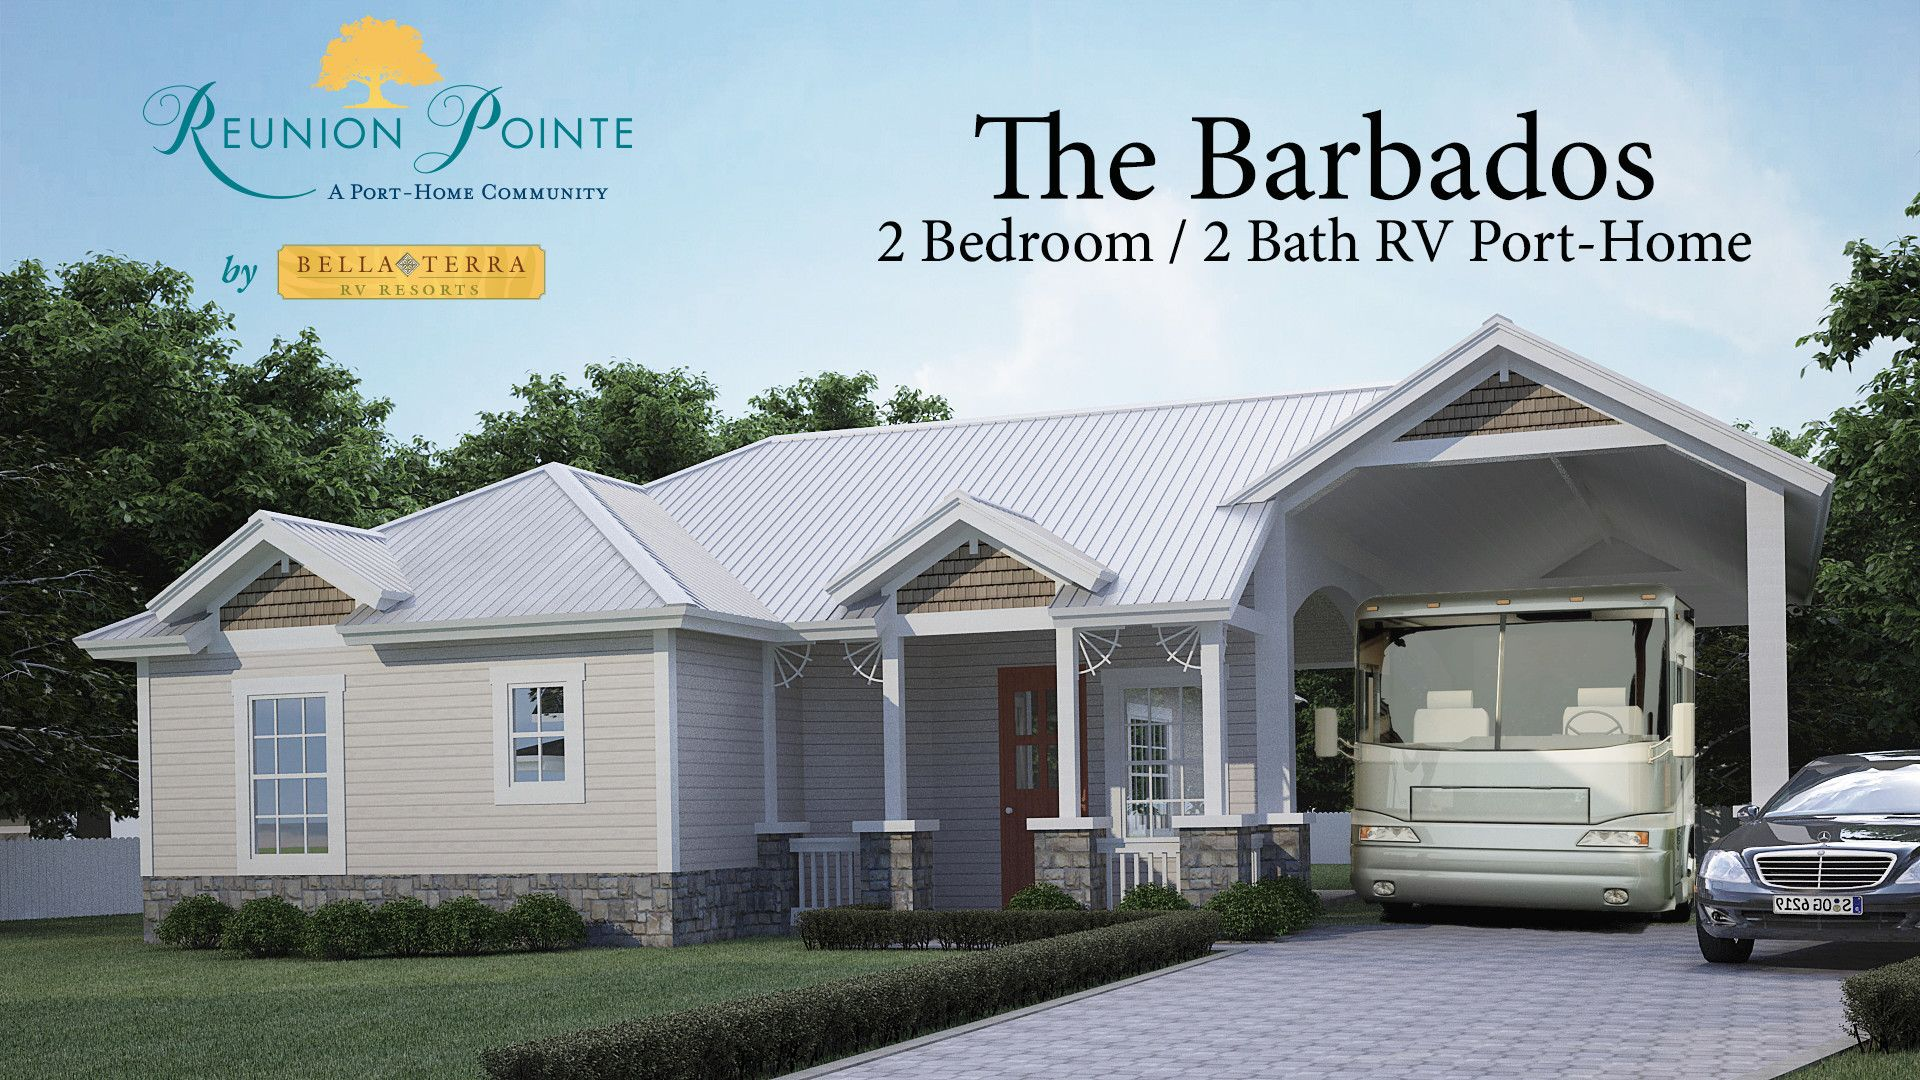 The Barbados  2 bedroom 2 bath RV port home at Reunion Point  Pre. The Barbados  2 bedroom 2 bath RV port home at Reunion Point  Pre